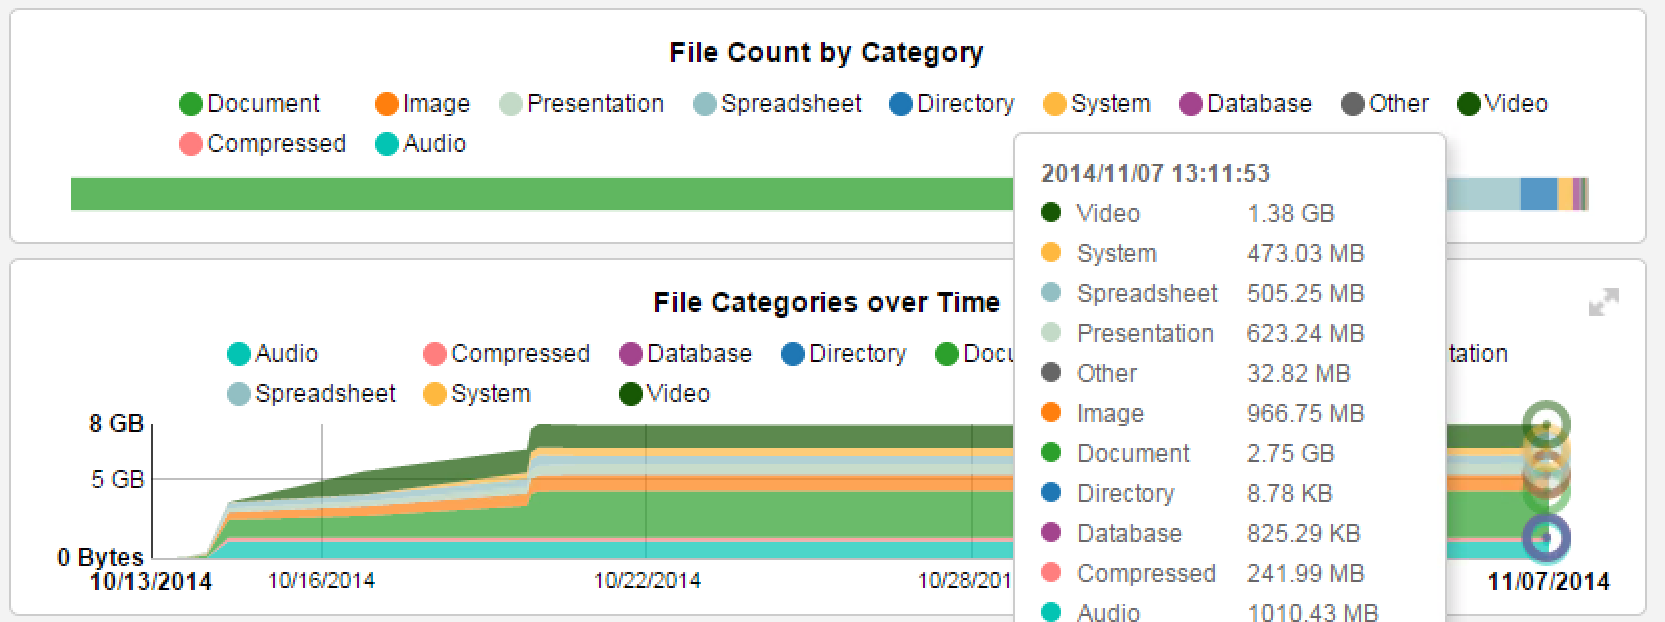 Breakout of File Category Growth over Time